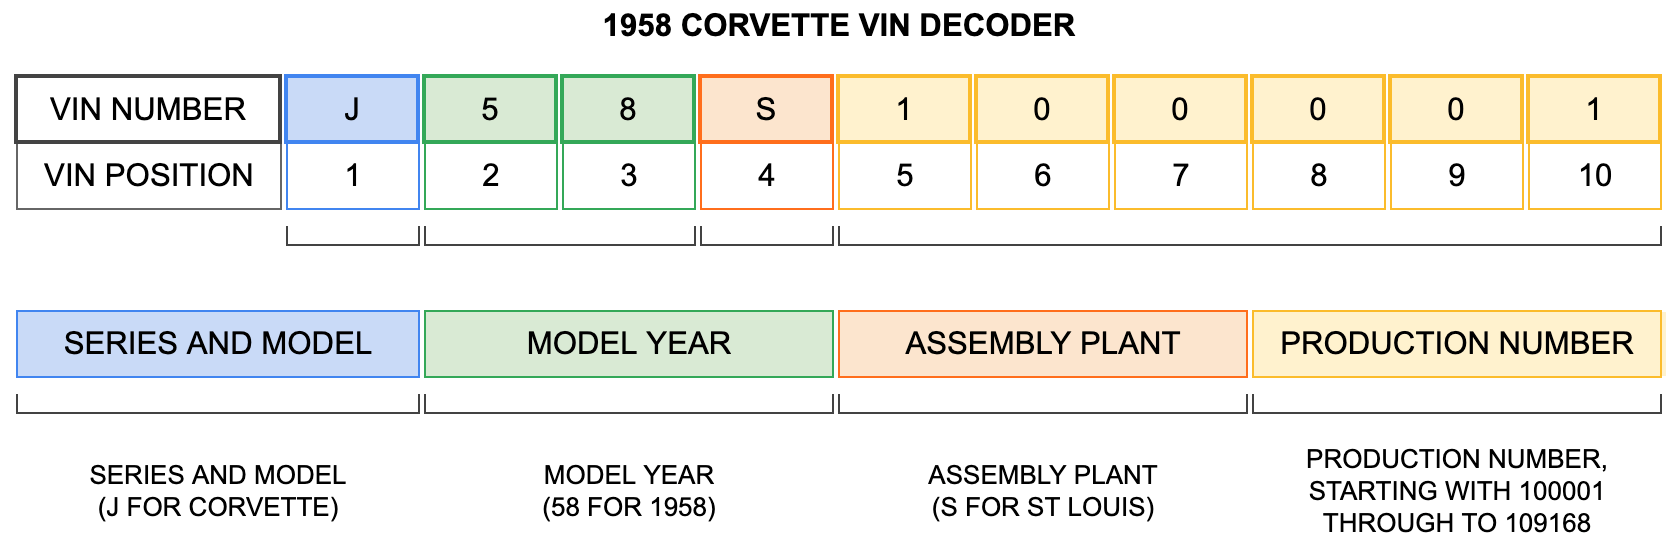 1958 Corvette VIN Decoder